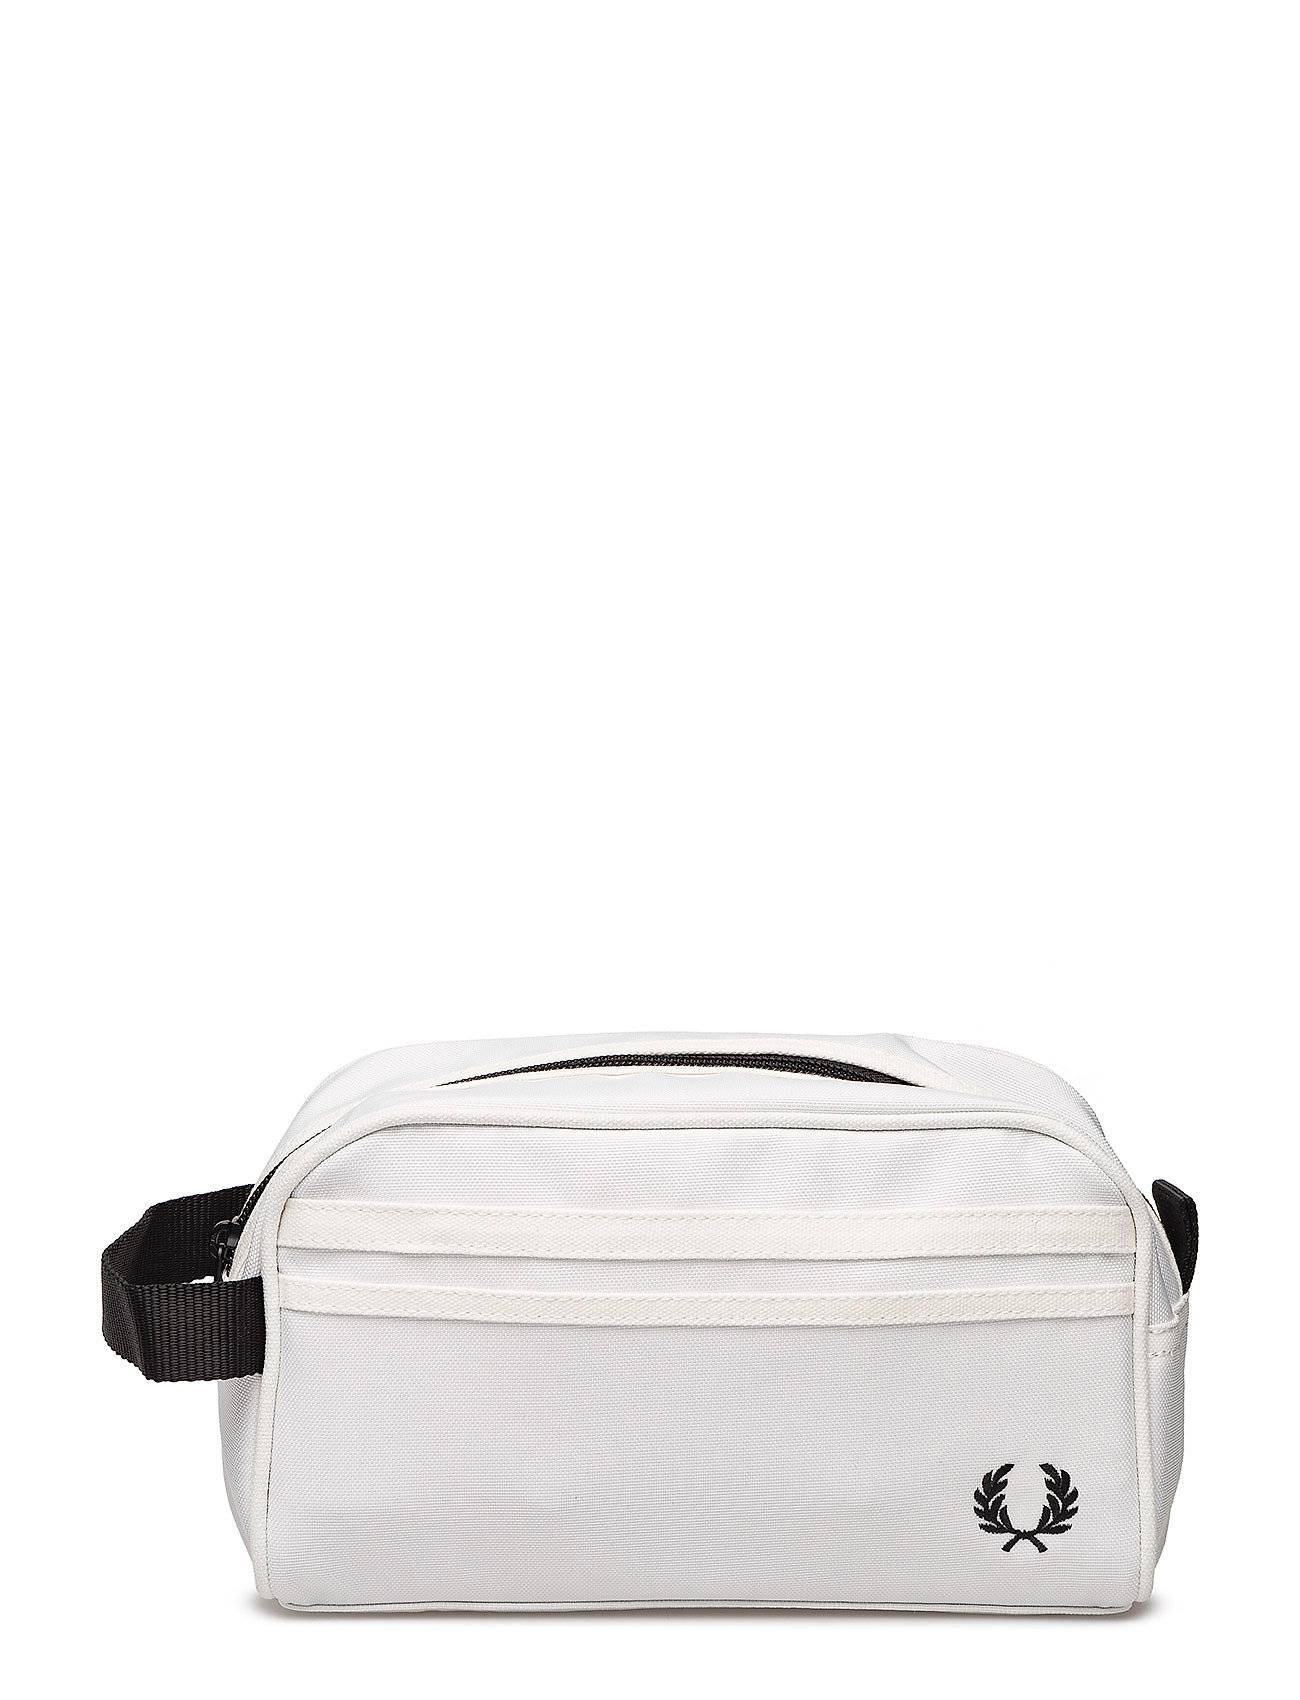 Fred Perry T/Tipped Travel Bag